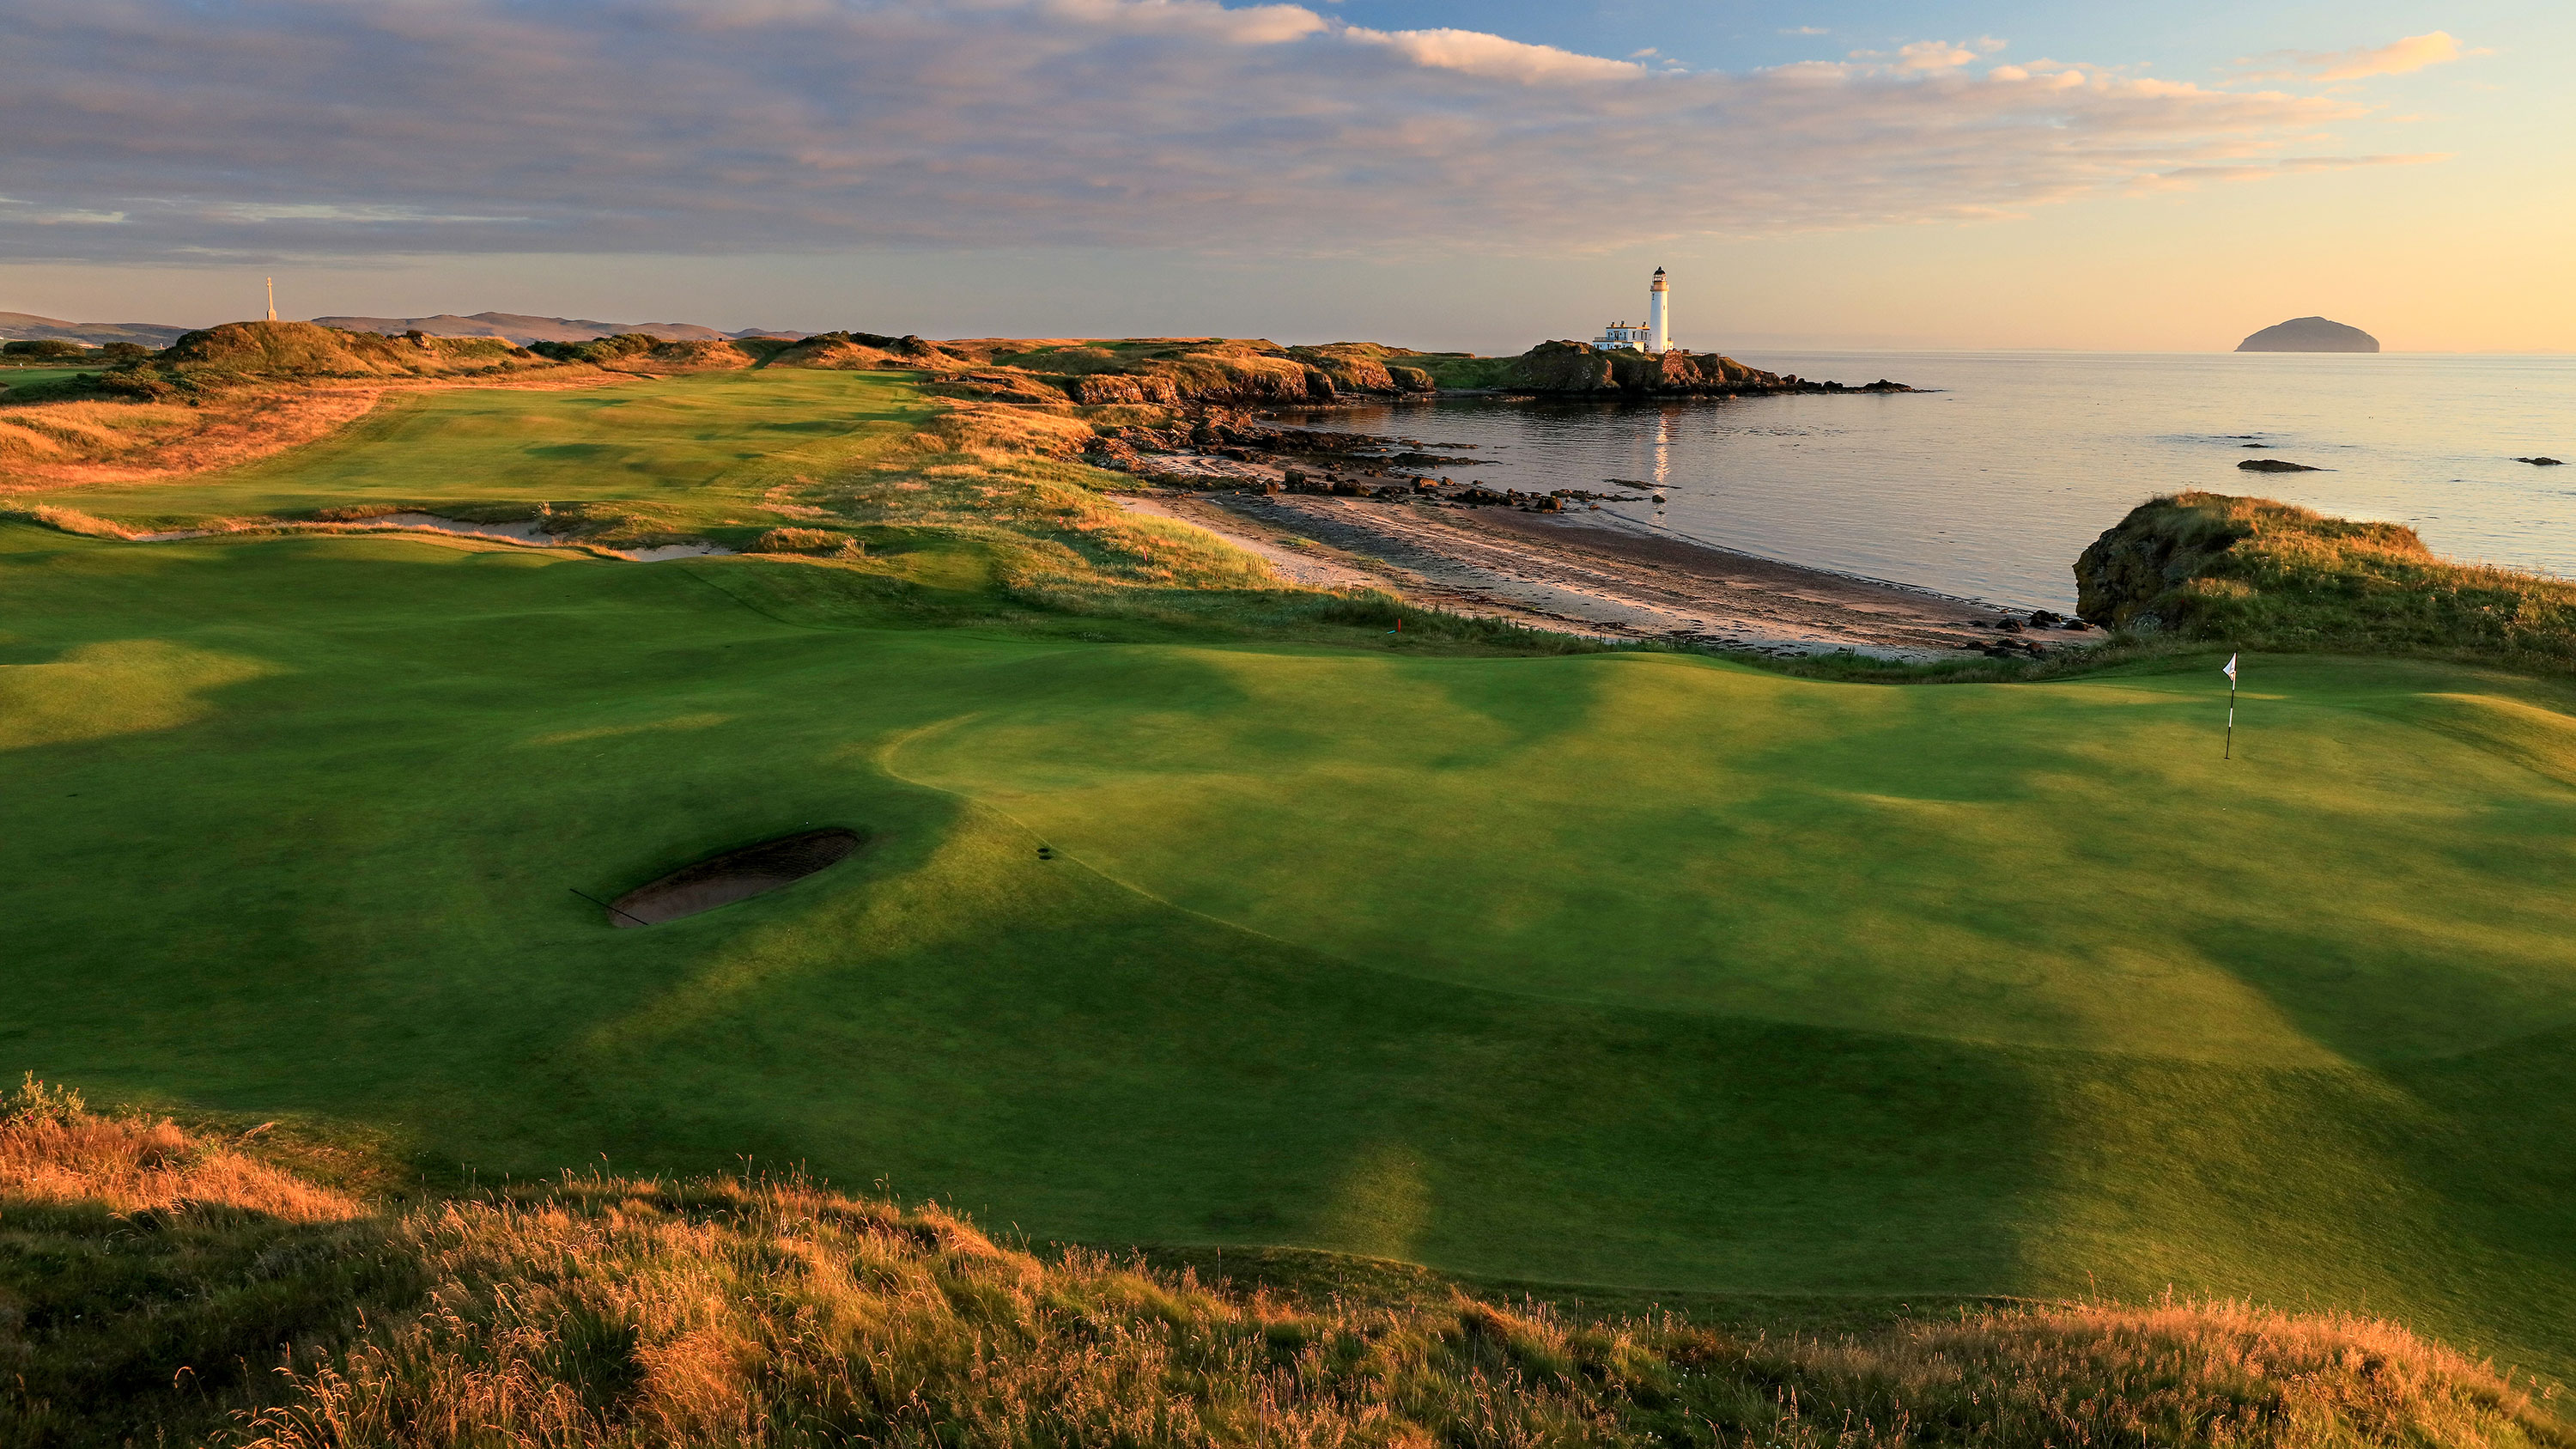 Trump Turnberry golf course in Turnberry, Scotland.